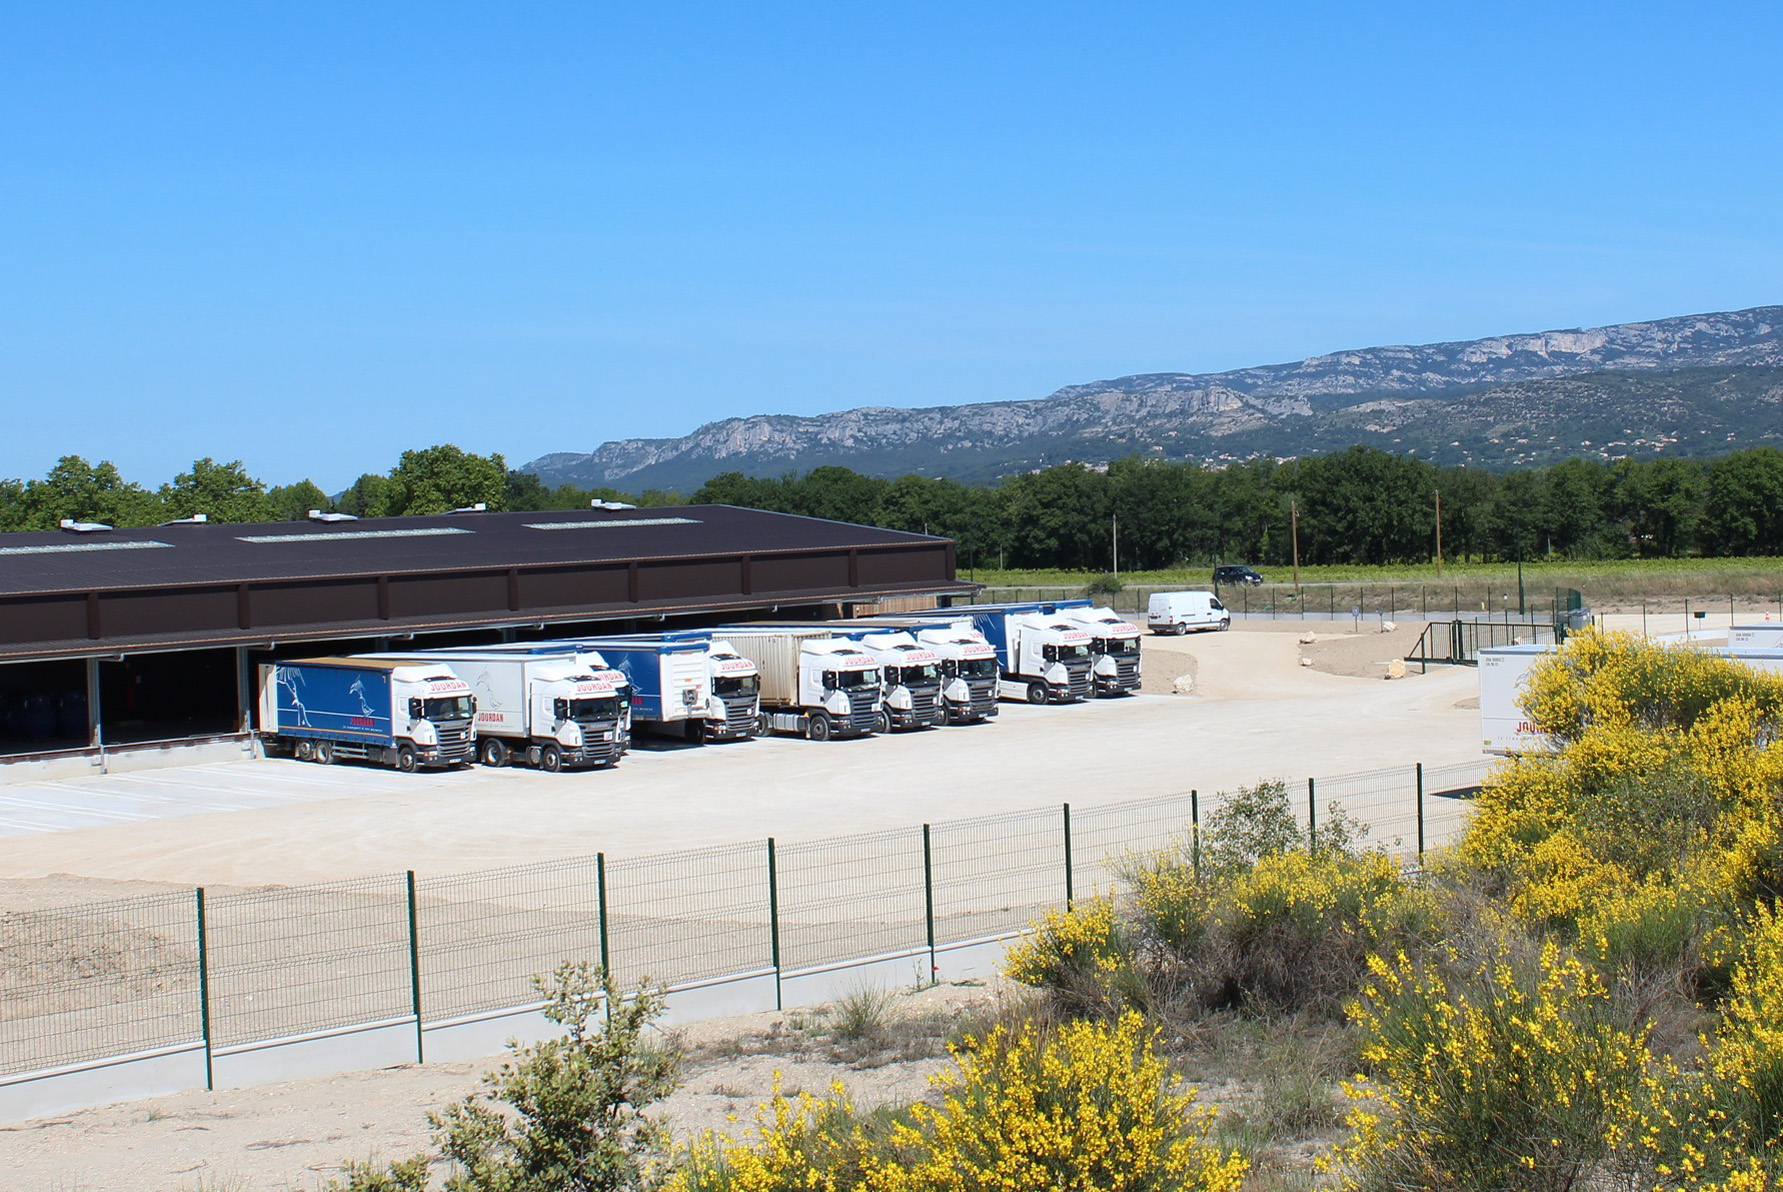 Transports Jourdan expands in Provence and invests €2 million